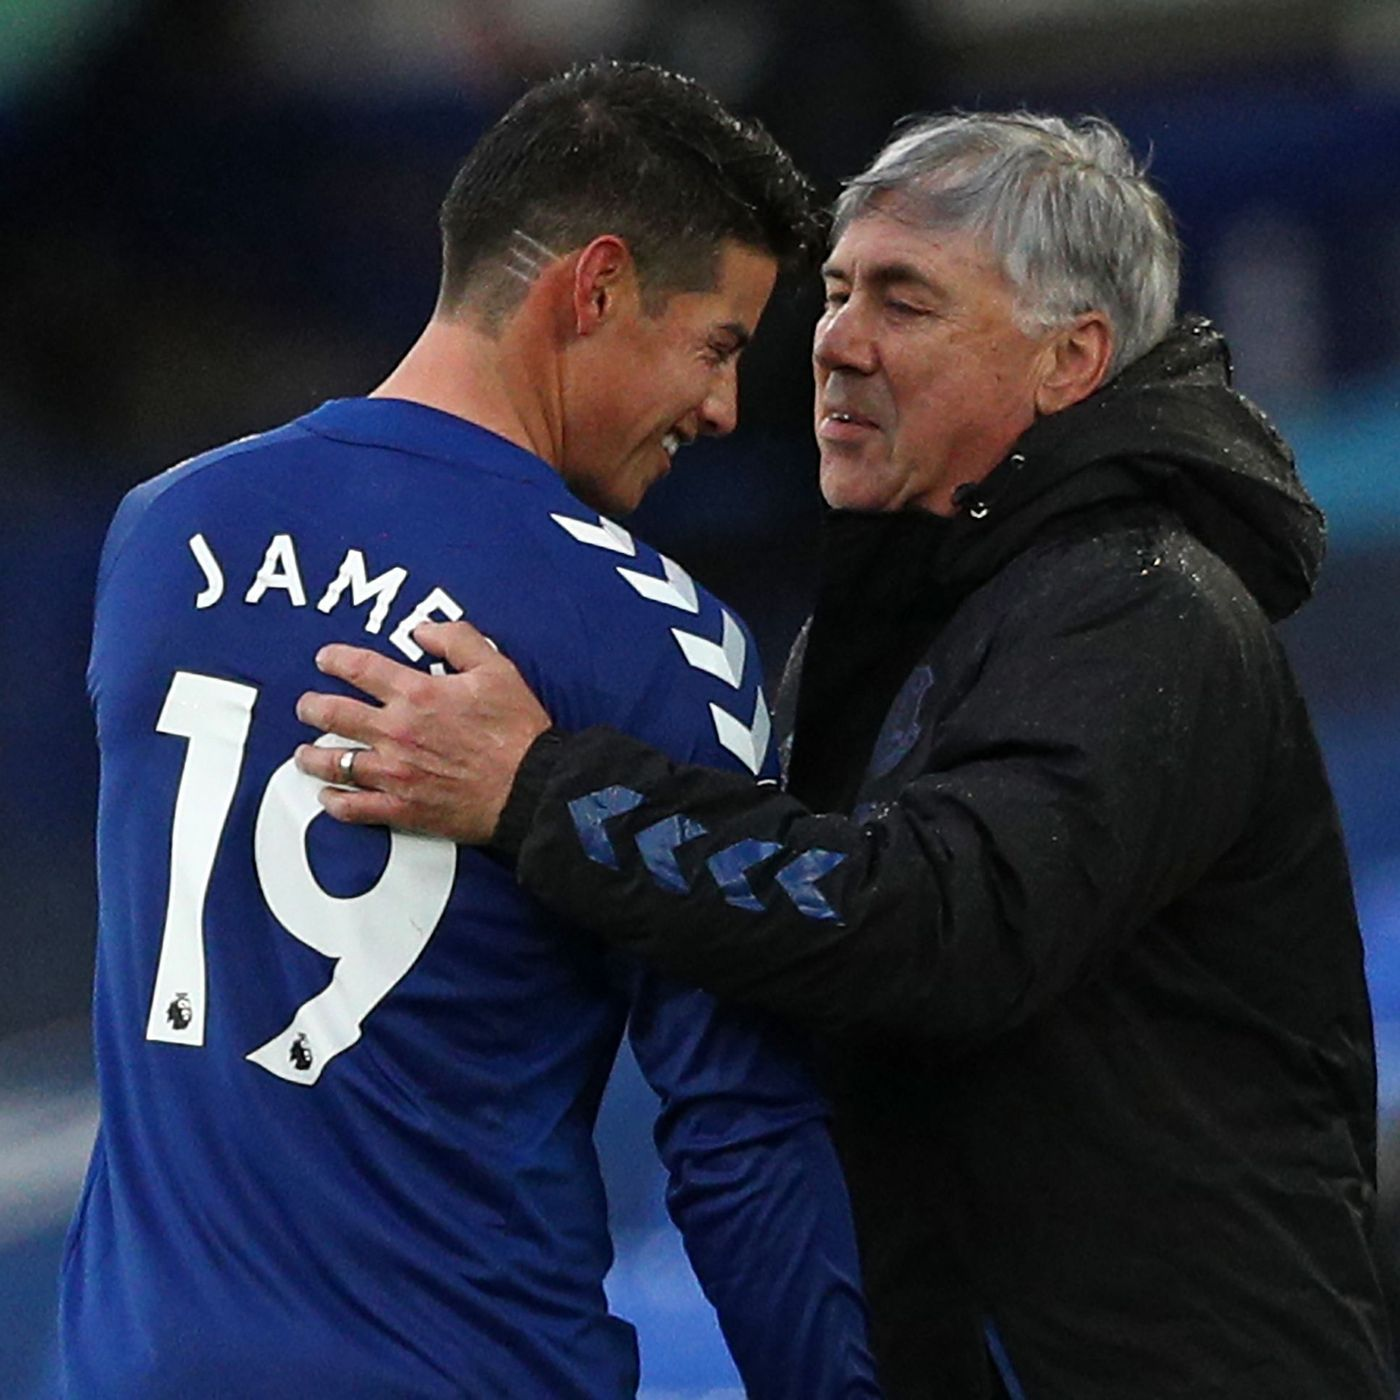 Analysing Everton: Success of James, Carlo's style, DCL's ceiling, and what transfers the Blues should target